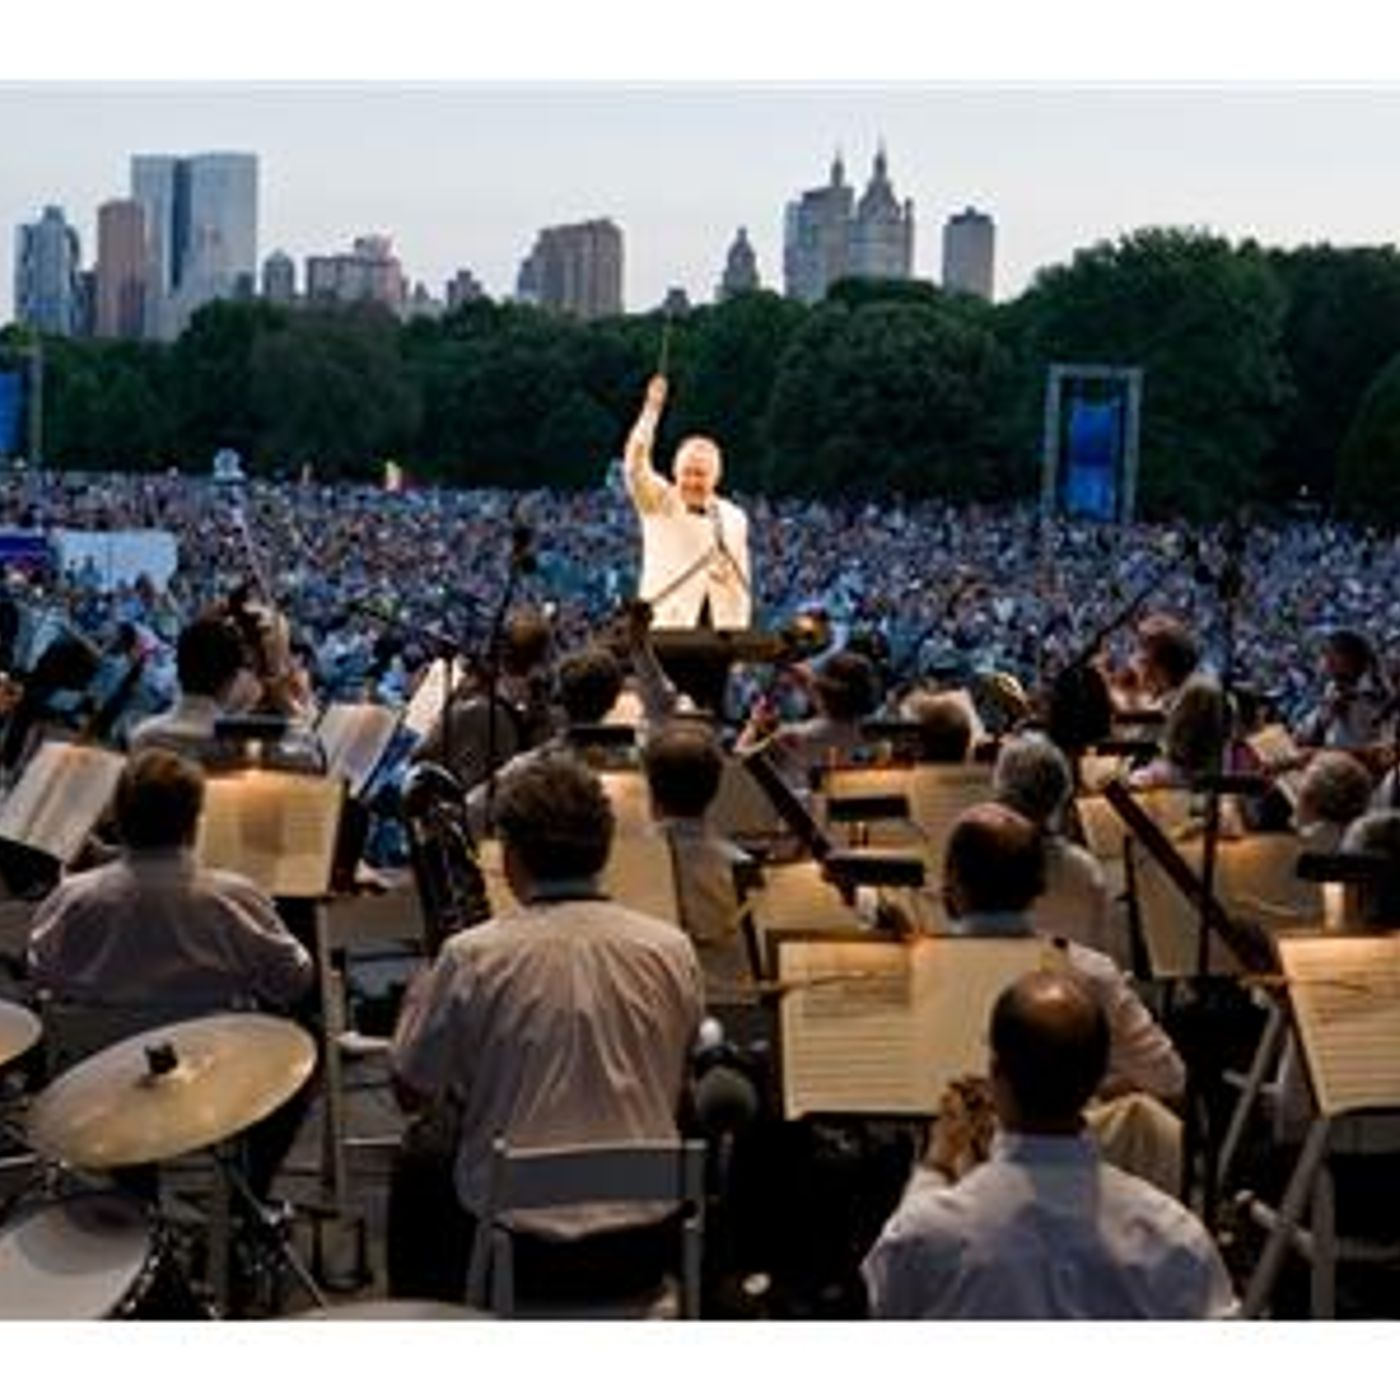 Summer Fun: Concerts in the Parks & Biking in the Heat